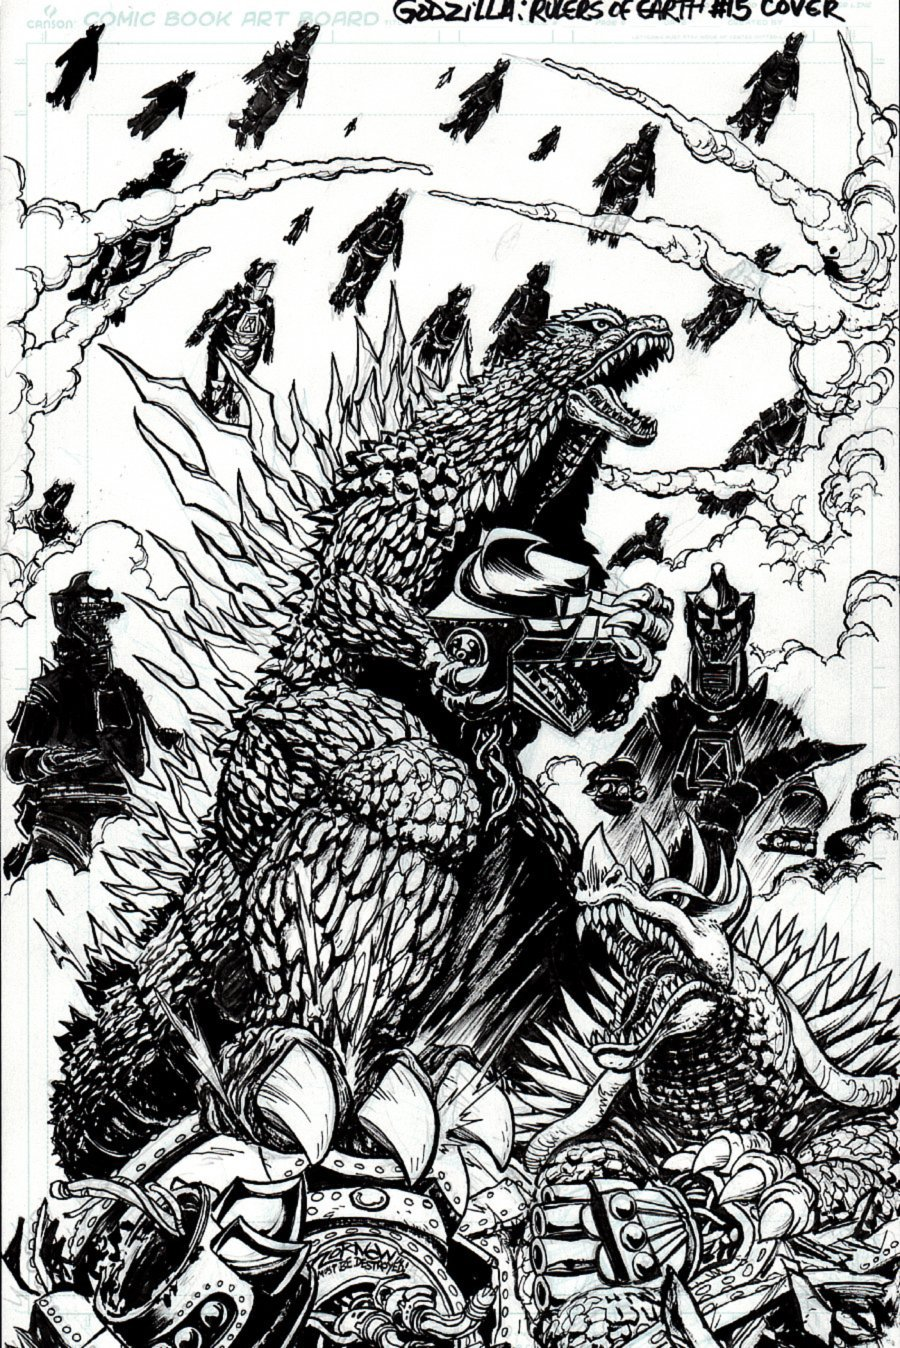 Godzilla: Rulers of Earth #15 Cover (2014)